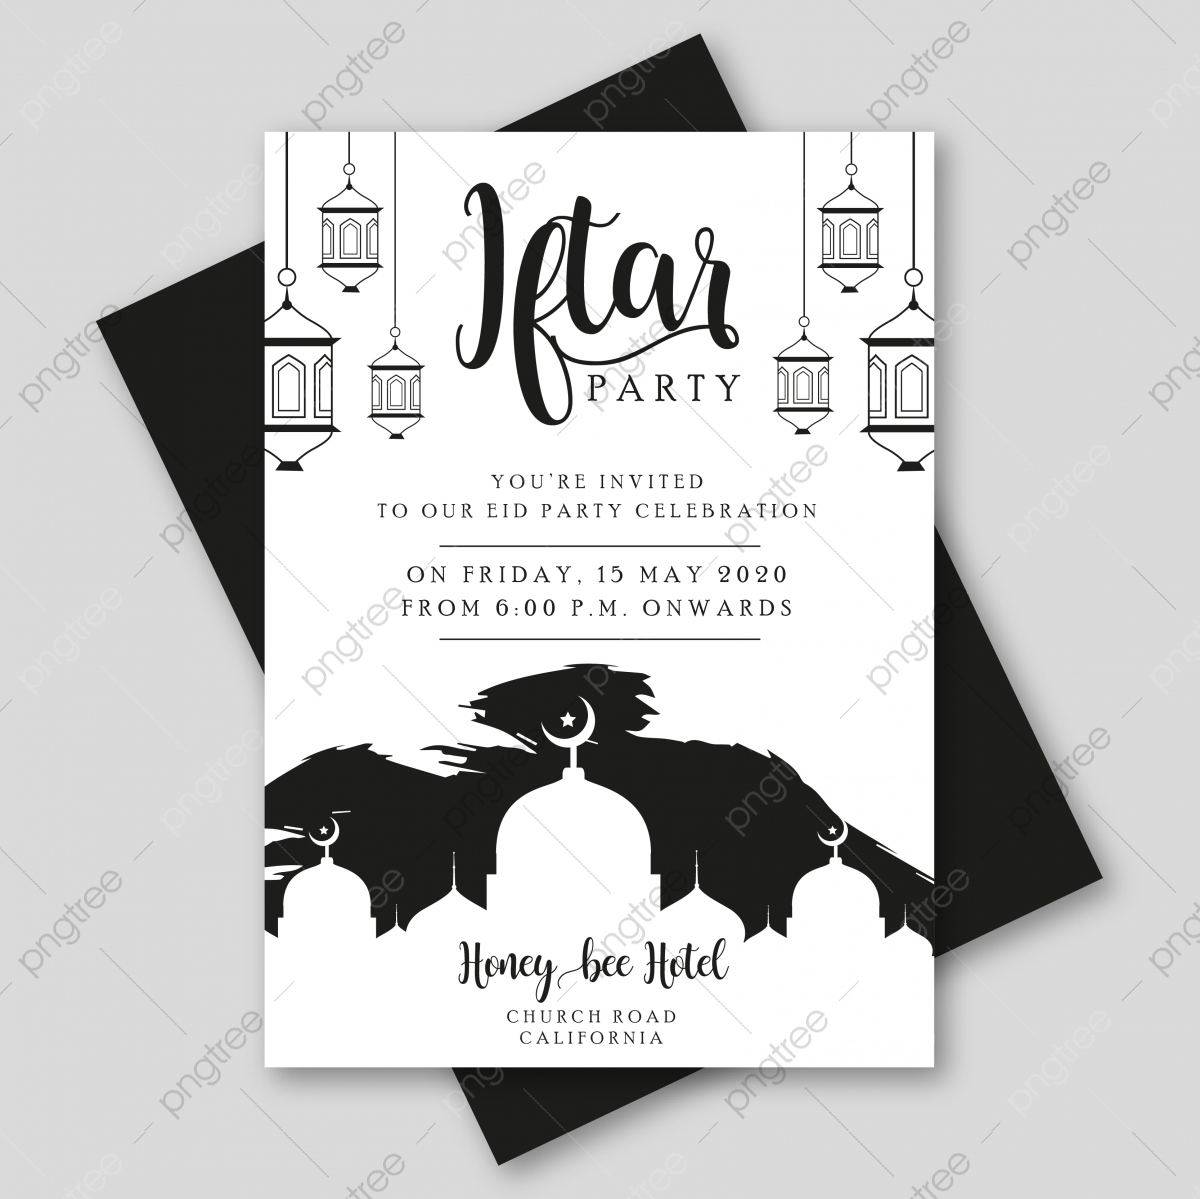 Iftar Party Invitation Template With Lantern And Mosque Template Download On Pngtree